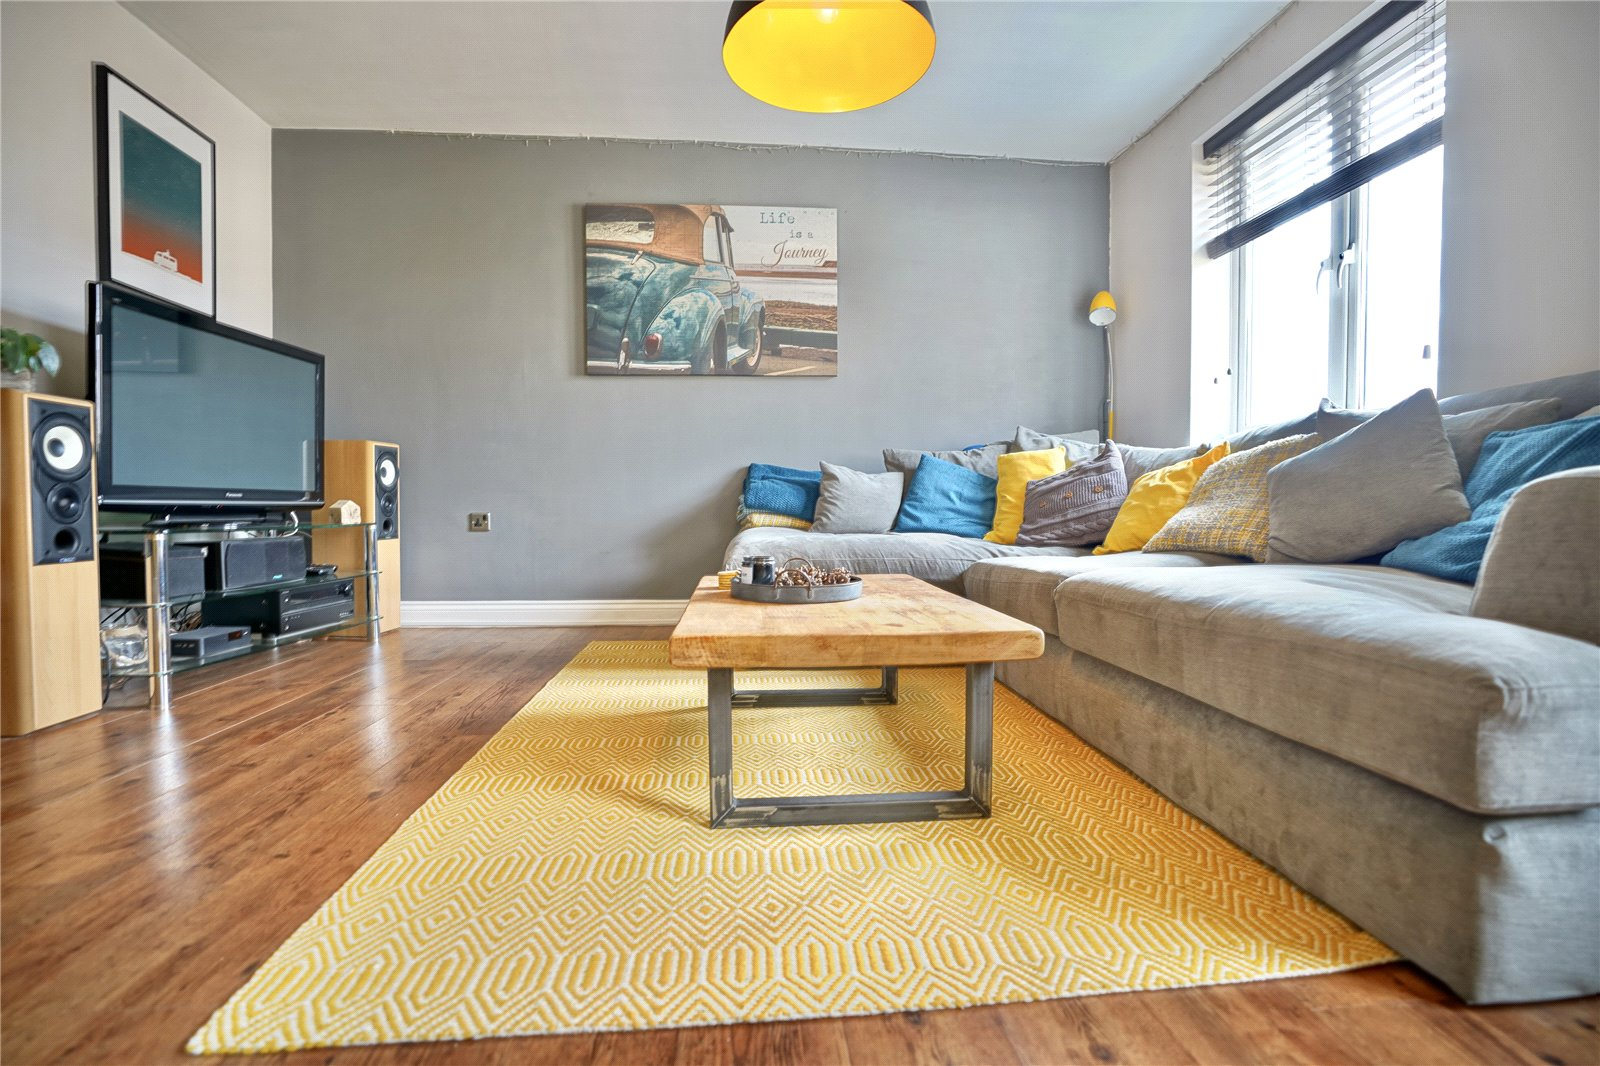 2 bed apartment for sale in St. Ives, PE27 5QL 4